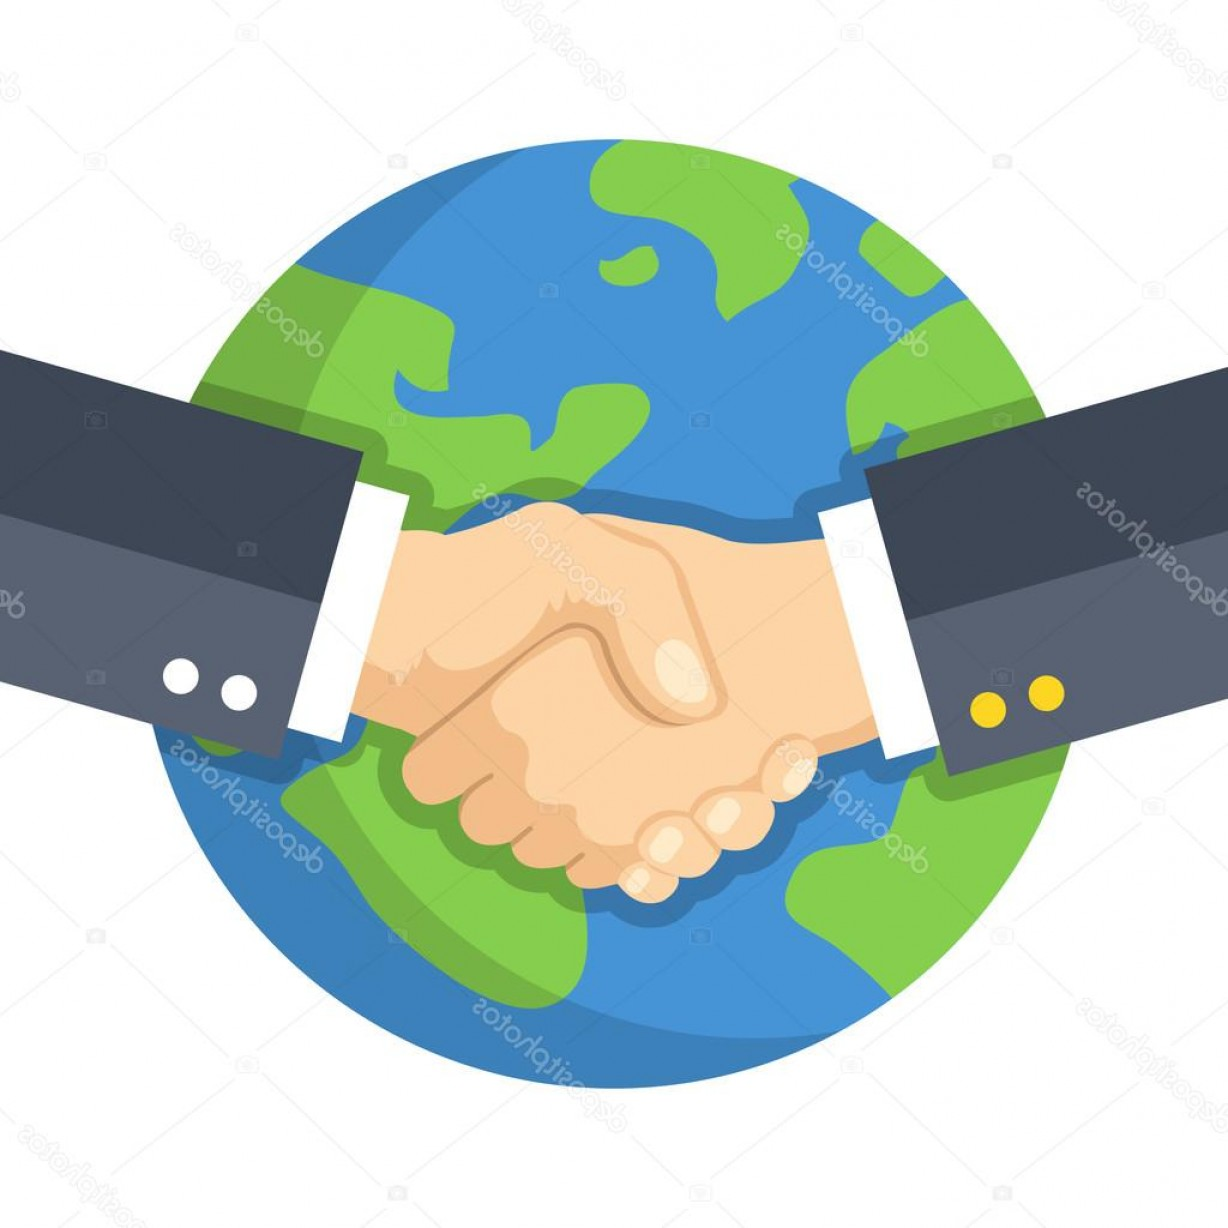 Handshake Clip Art Vector: Stock Illustration Handshake And Planet Earth World